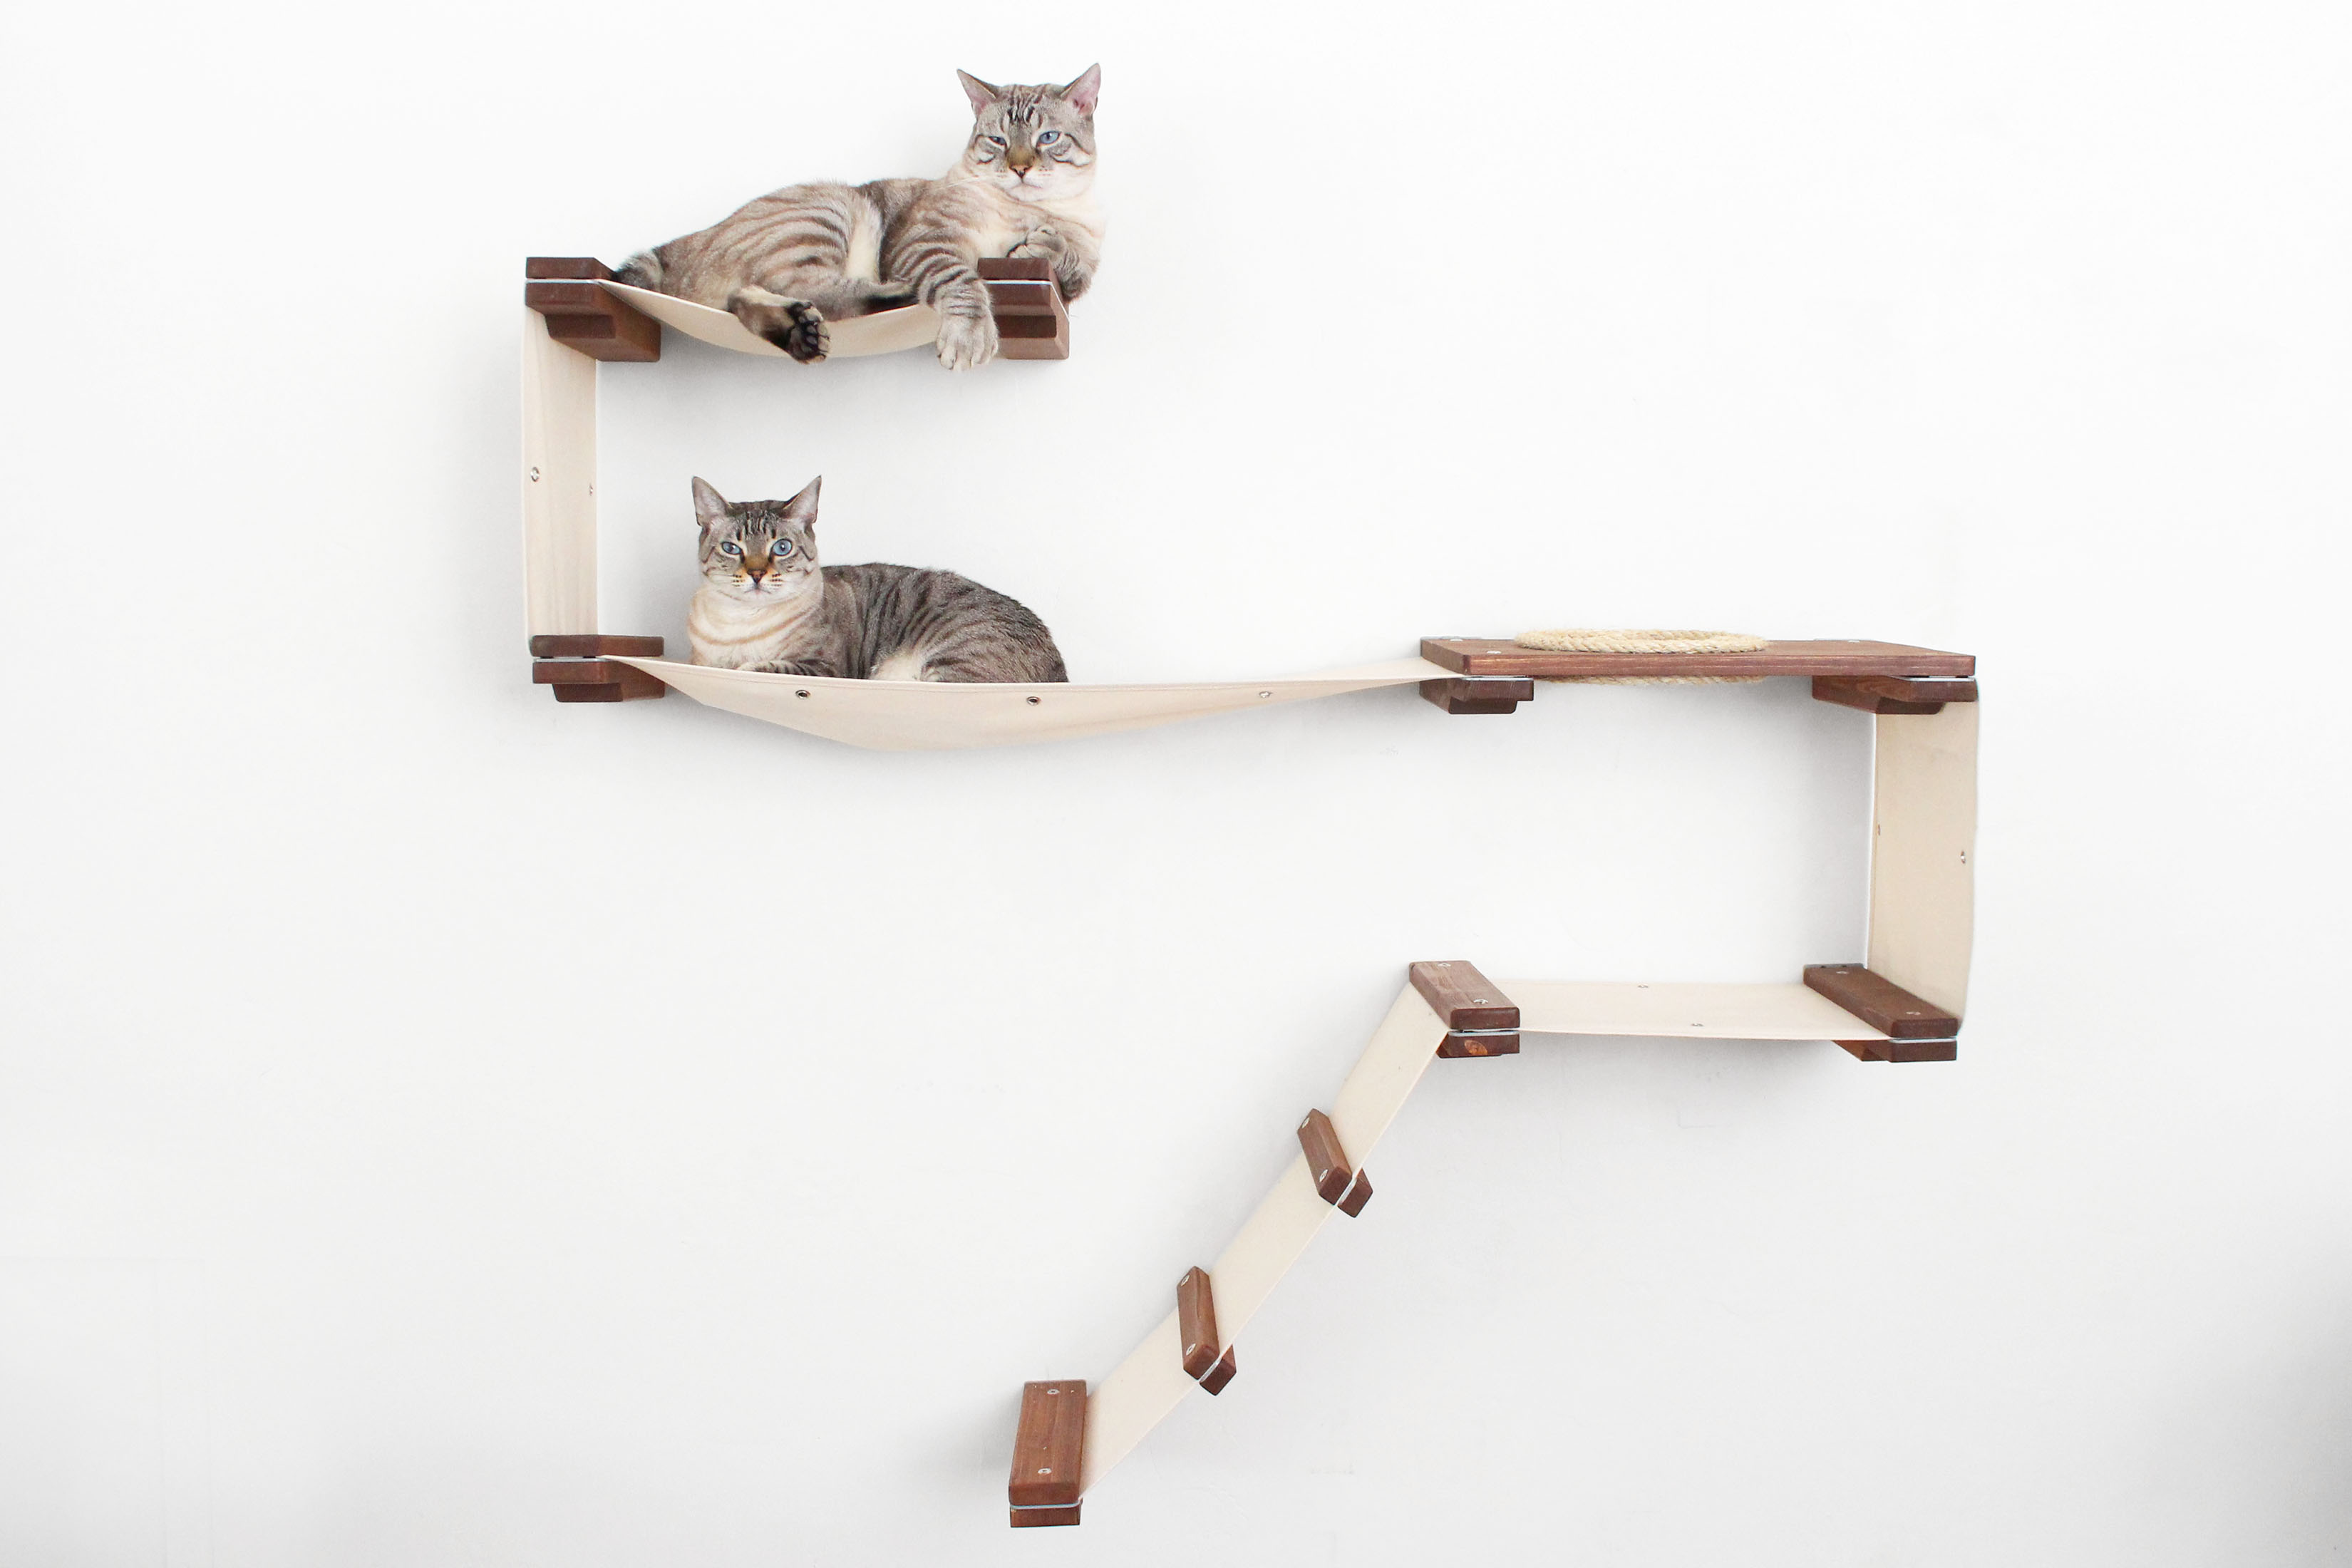 ladder centers posts hammock level wooden deluxe with condo katz natural sisal tree trees collections cat mau and activity